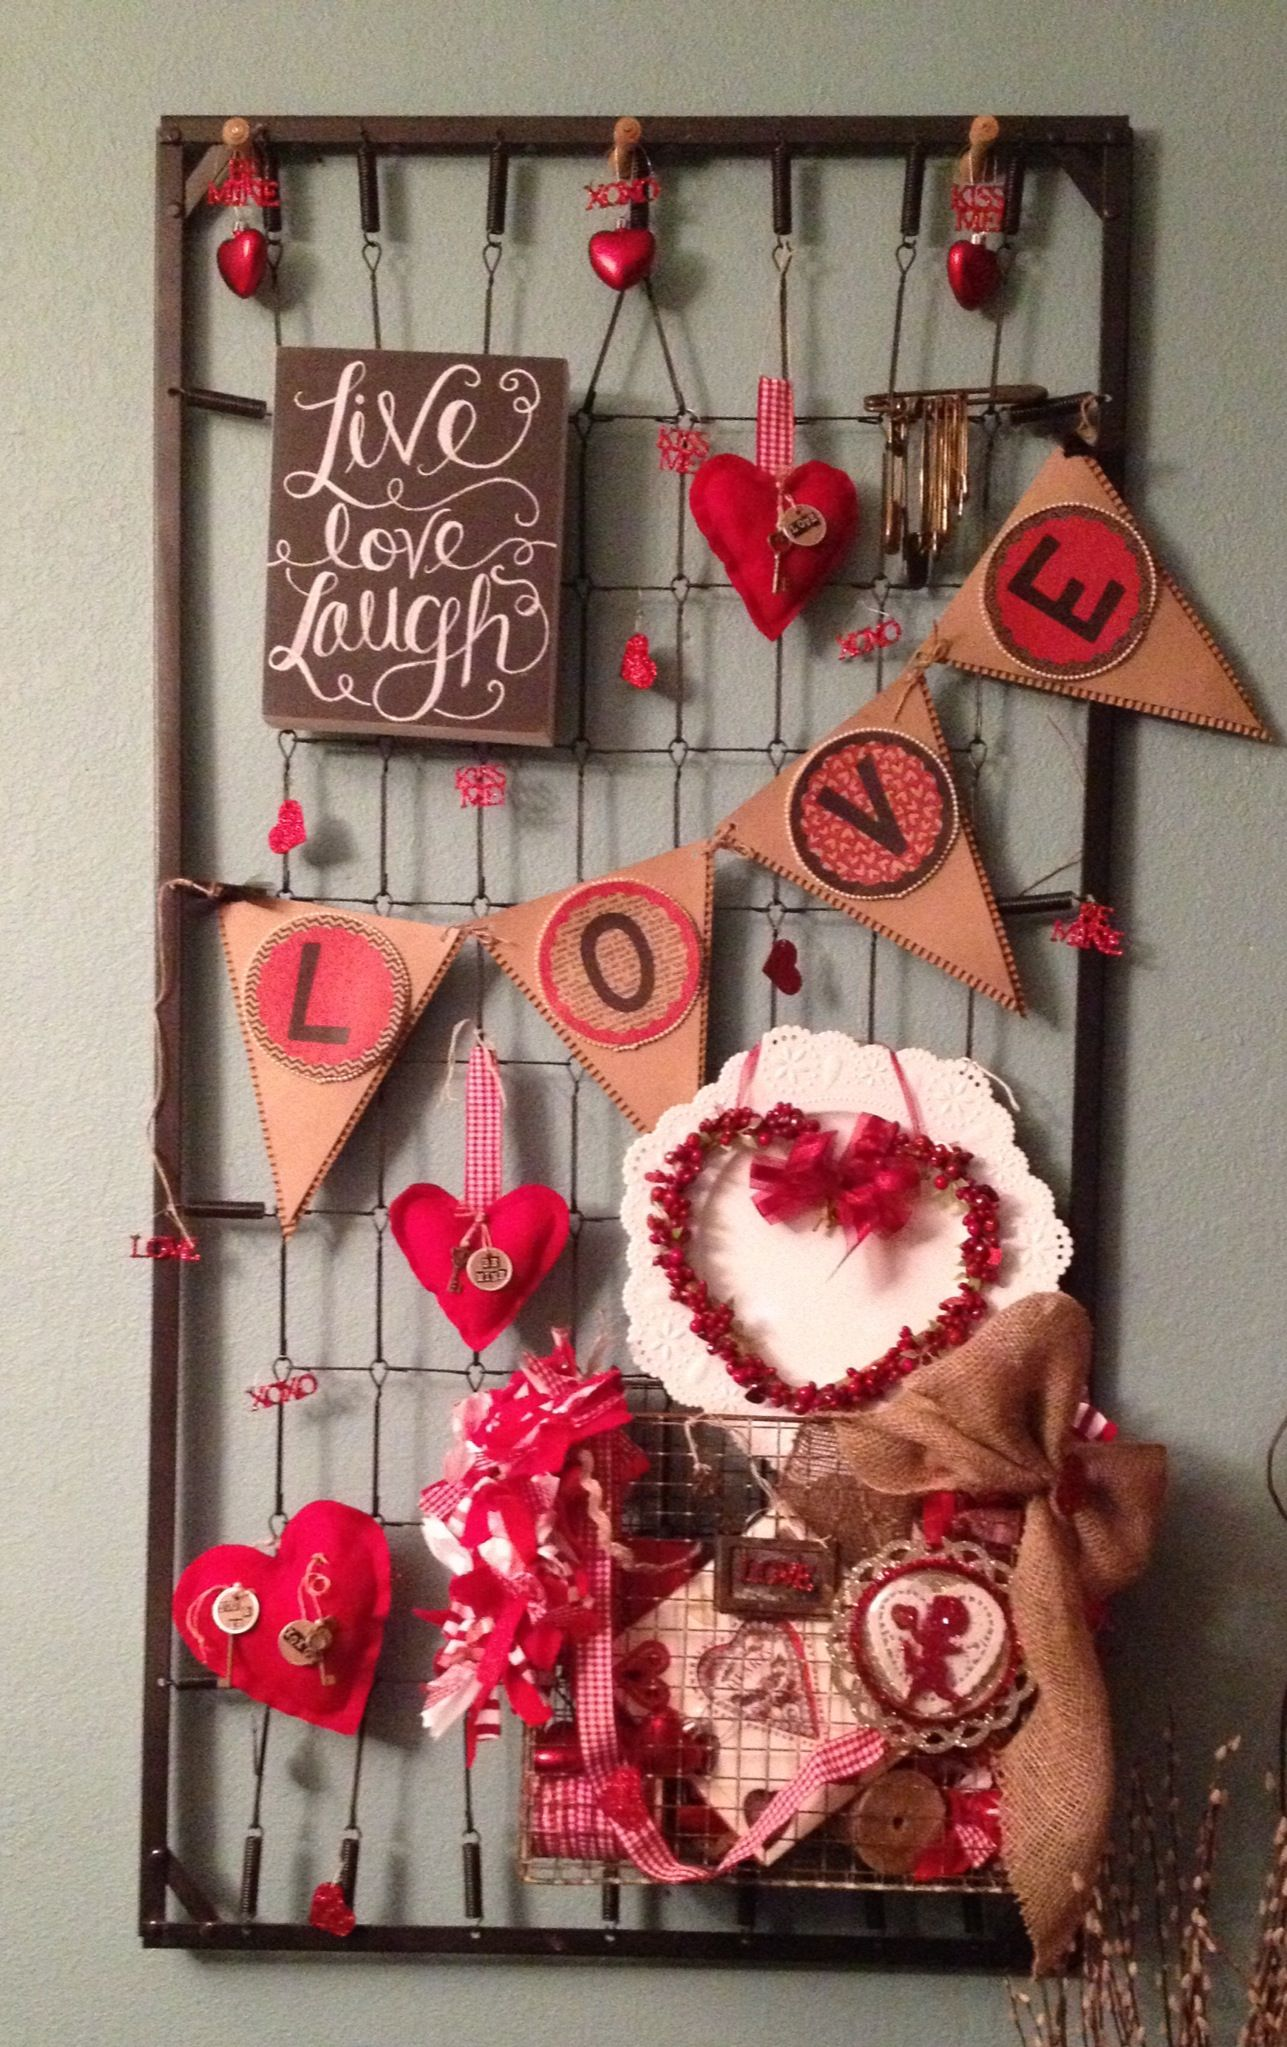 shabby chic valentines day decor baby bed spring or use old oven rack like the basket attached to it - Vintage Valentine Decorations